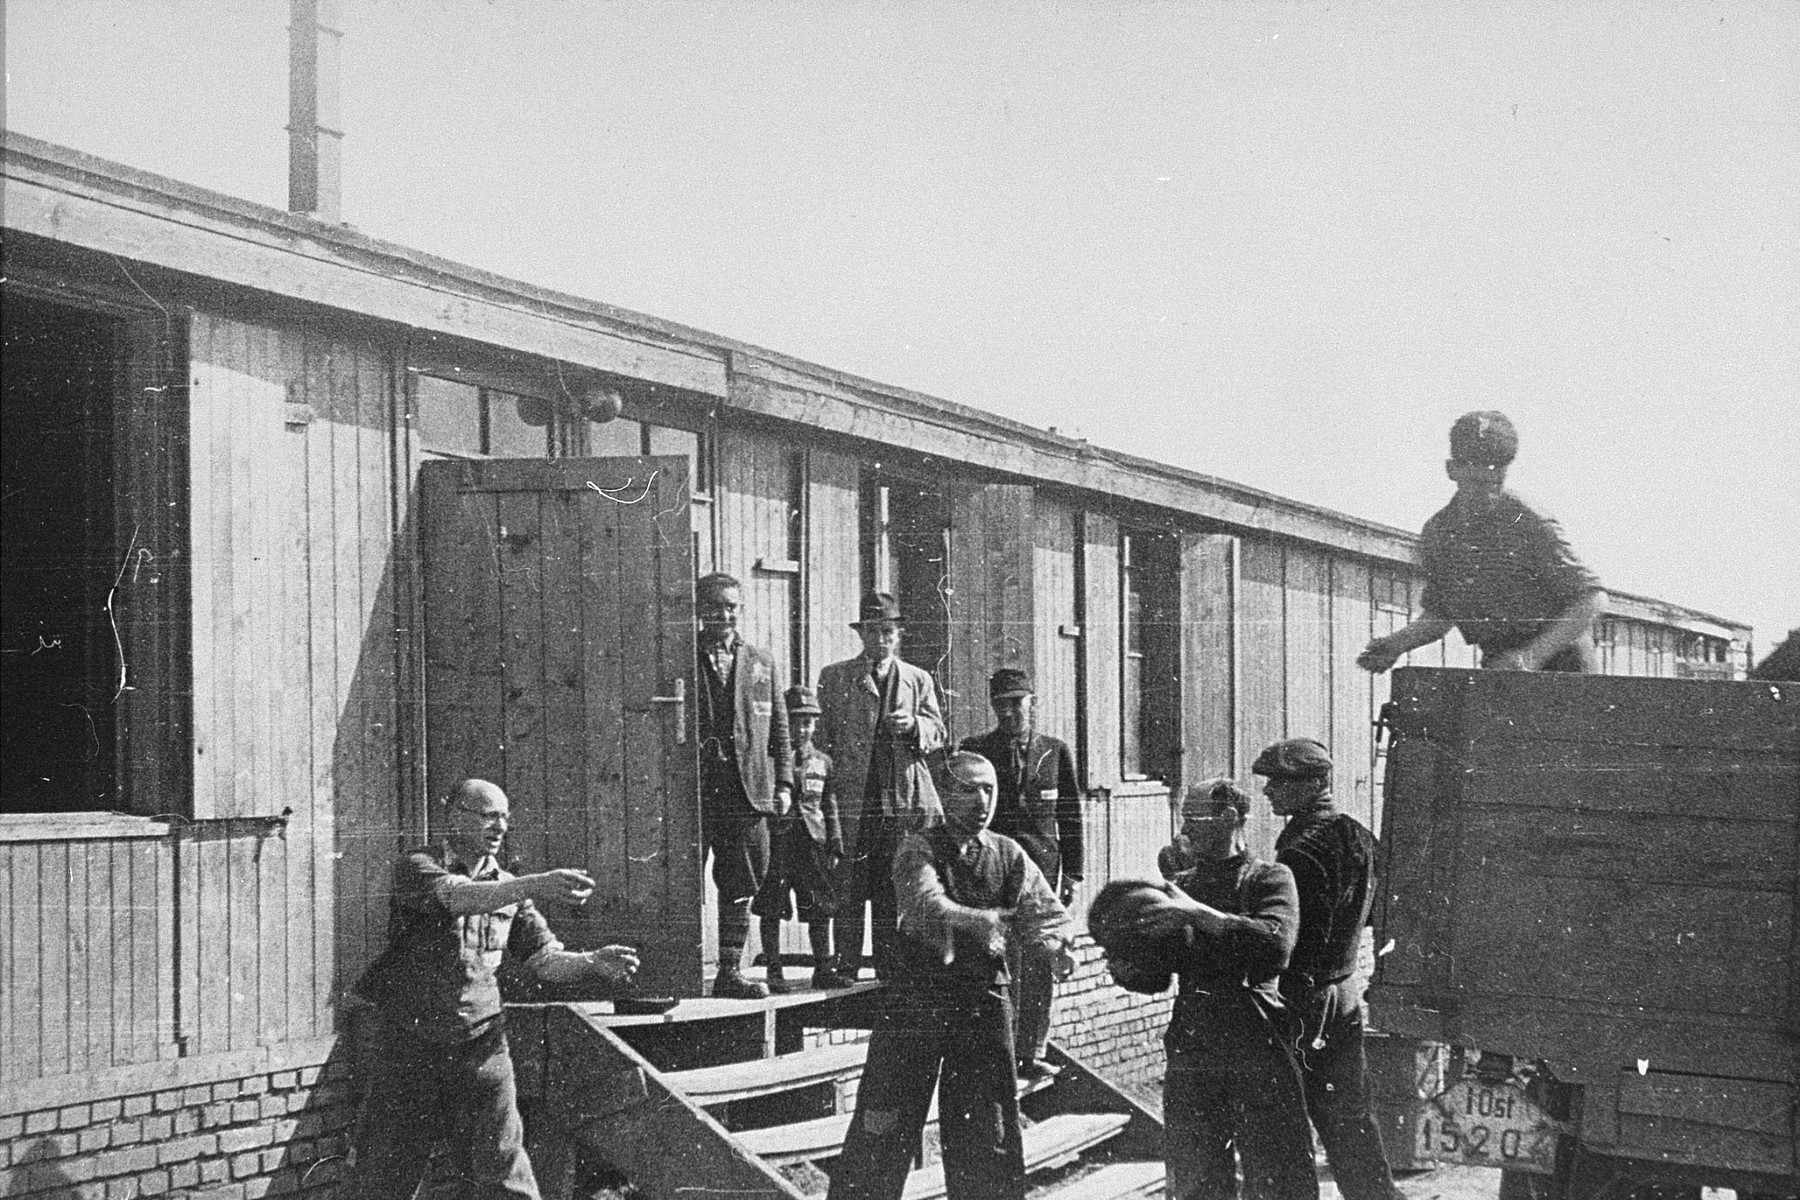 Jewish prisoners in Plaszow unload bread into part of the Madritch factory.    The Madritch factory utilized concentration camp labor to produce uniforms for the German army.